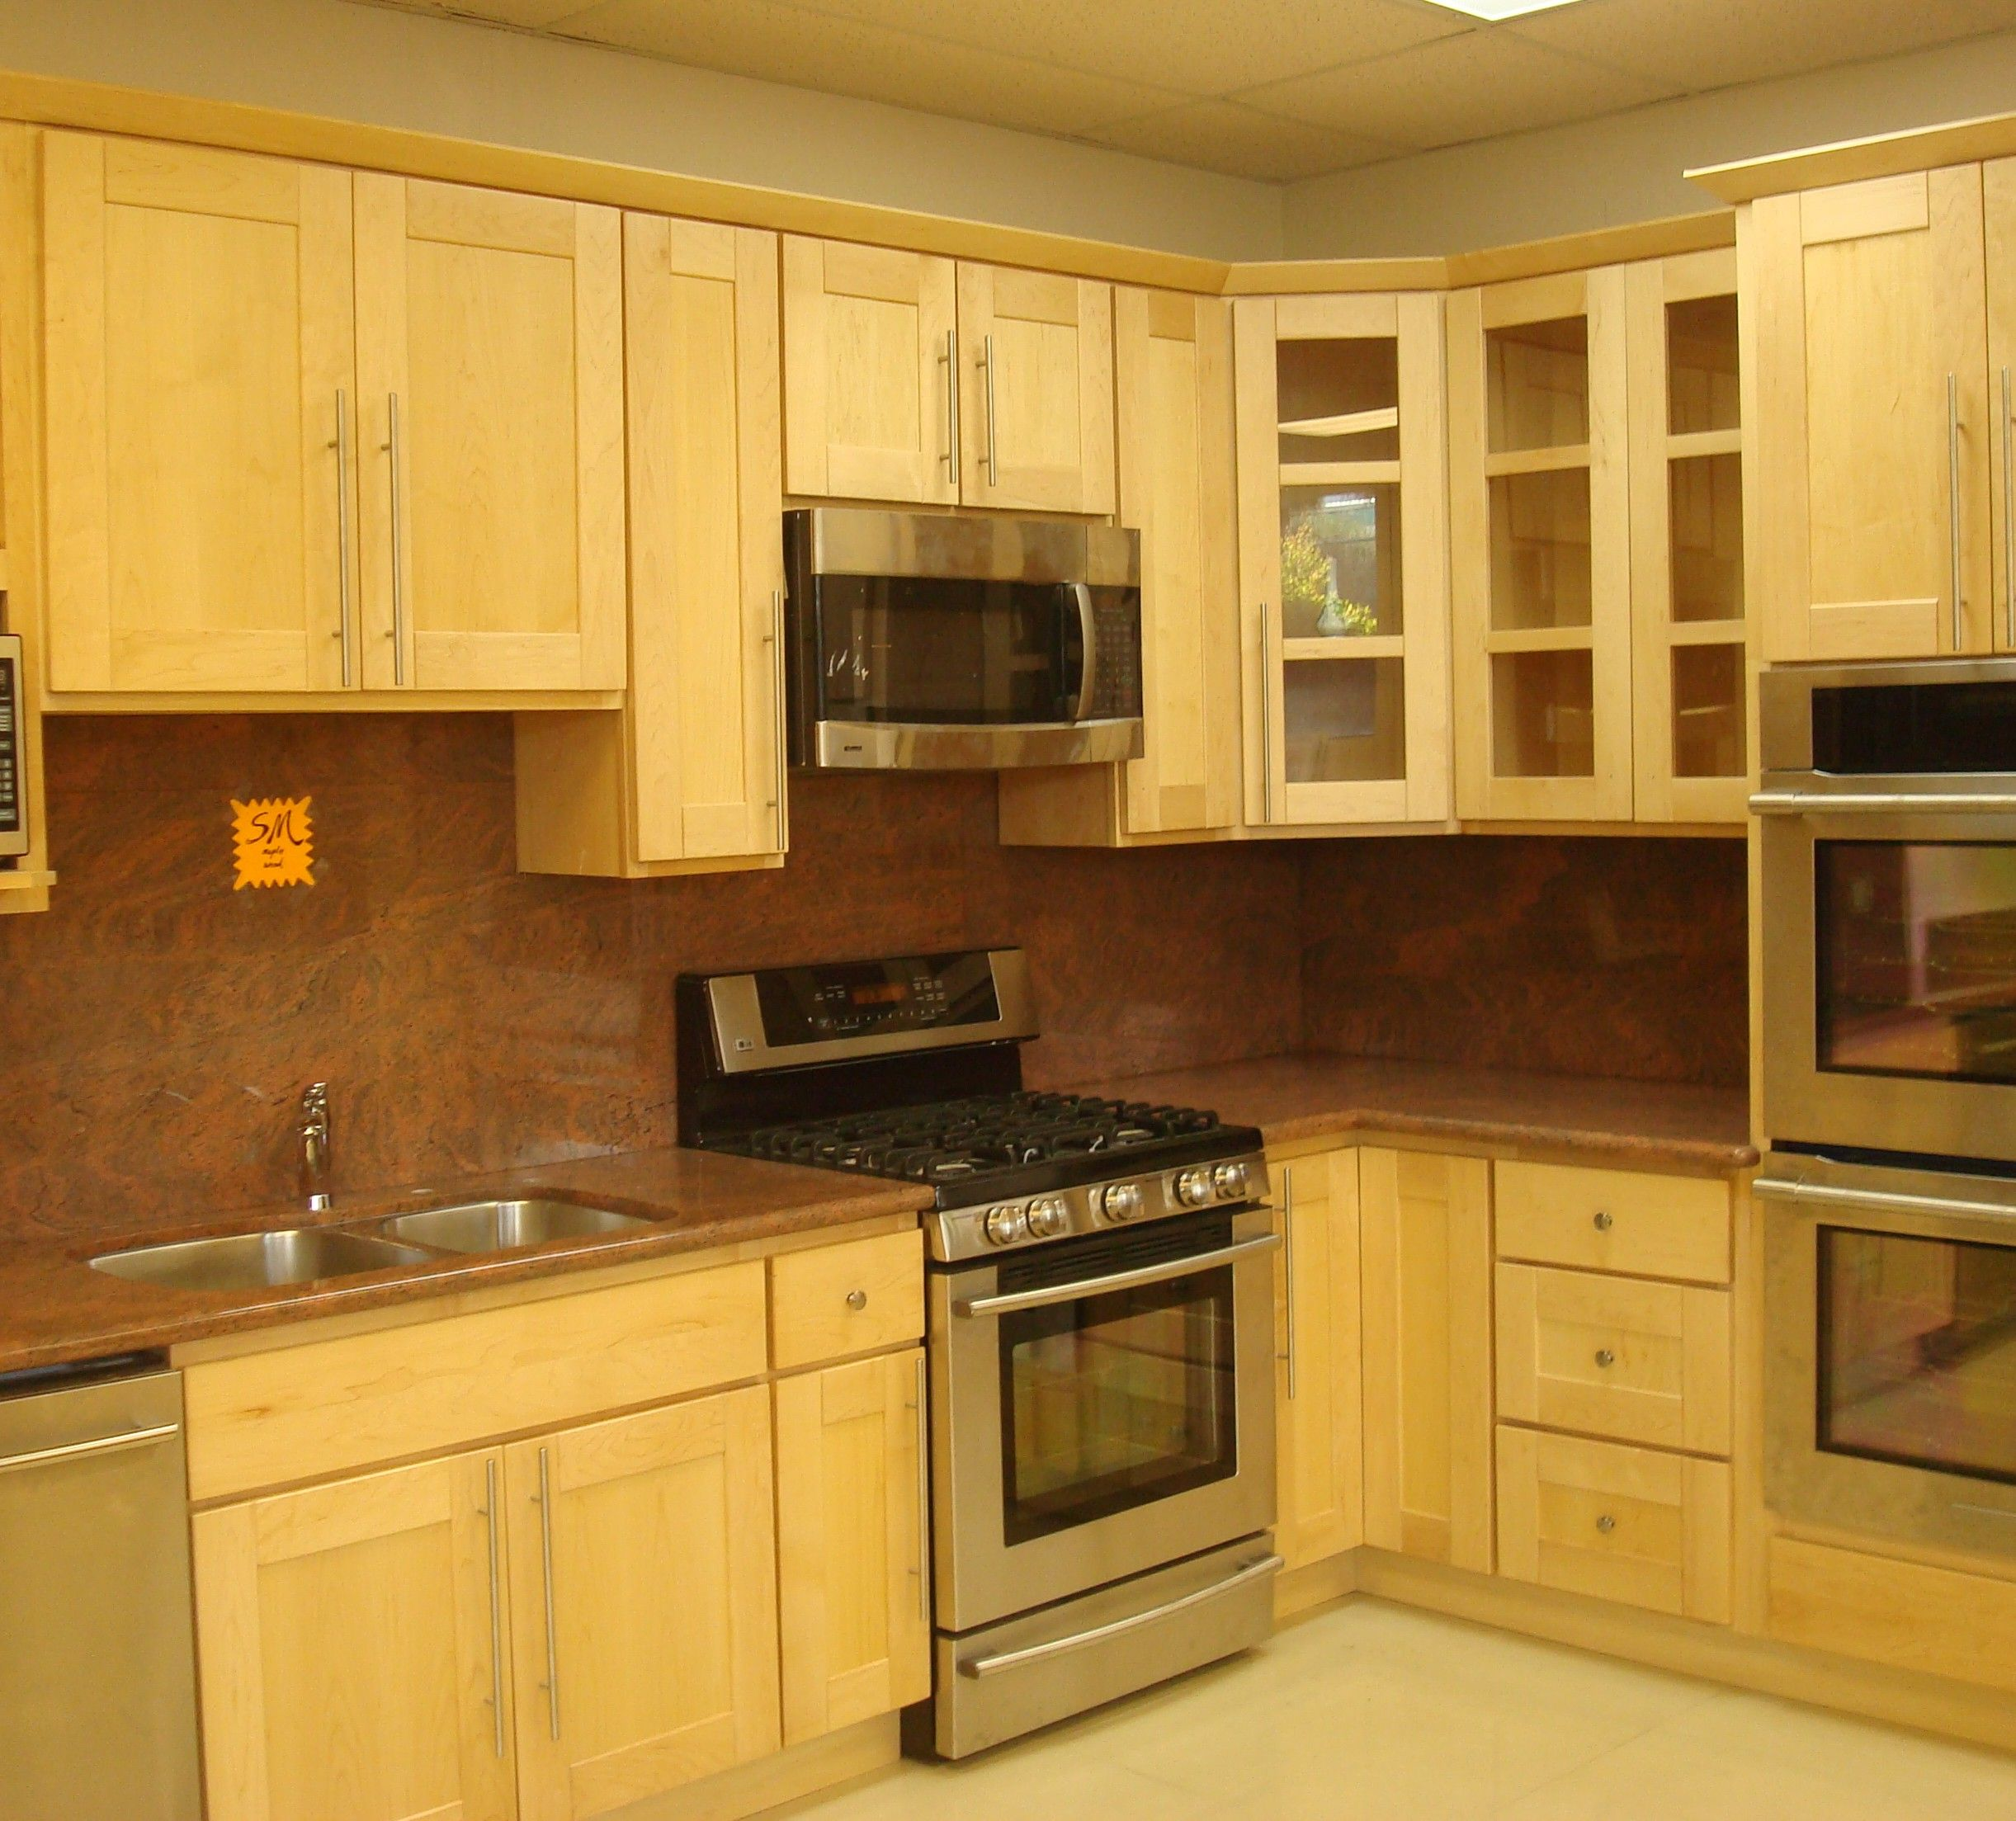 Yellow Kitchen Cabinets - http://www.hood-scoop.com/2416/yellow ...